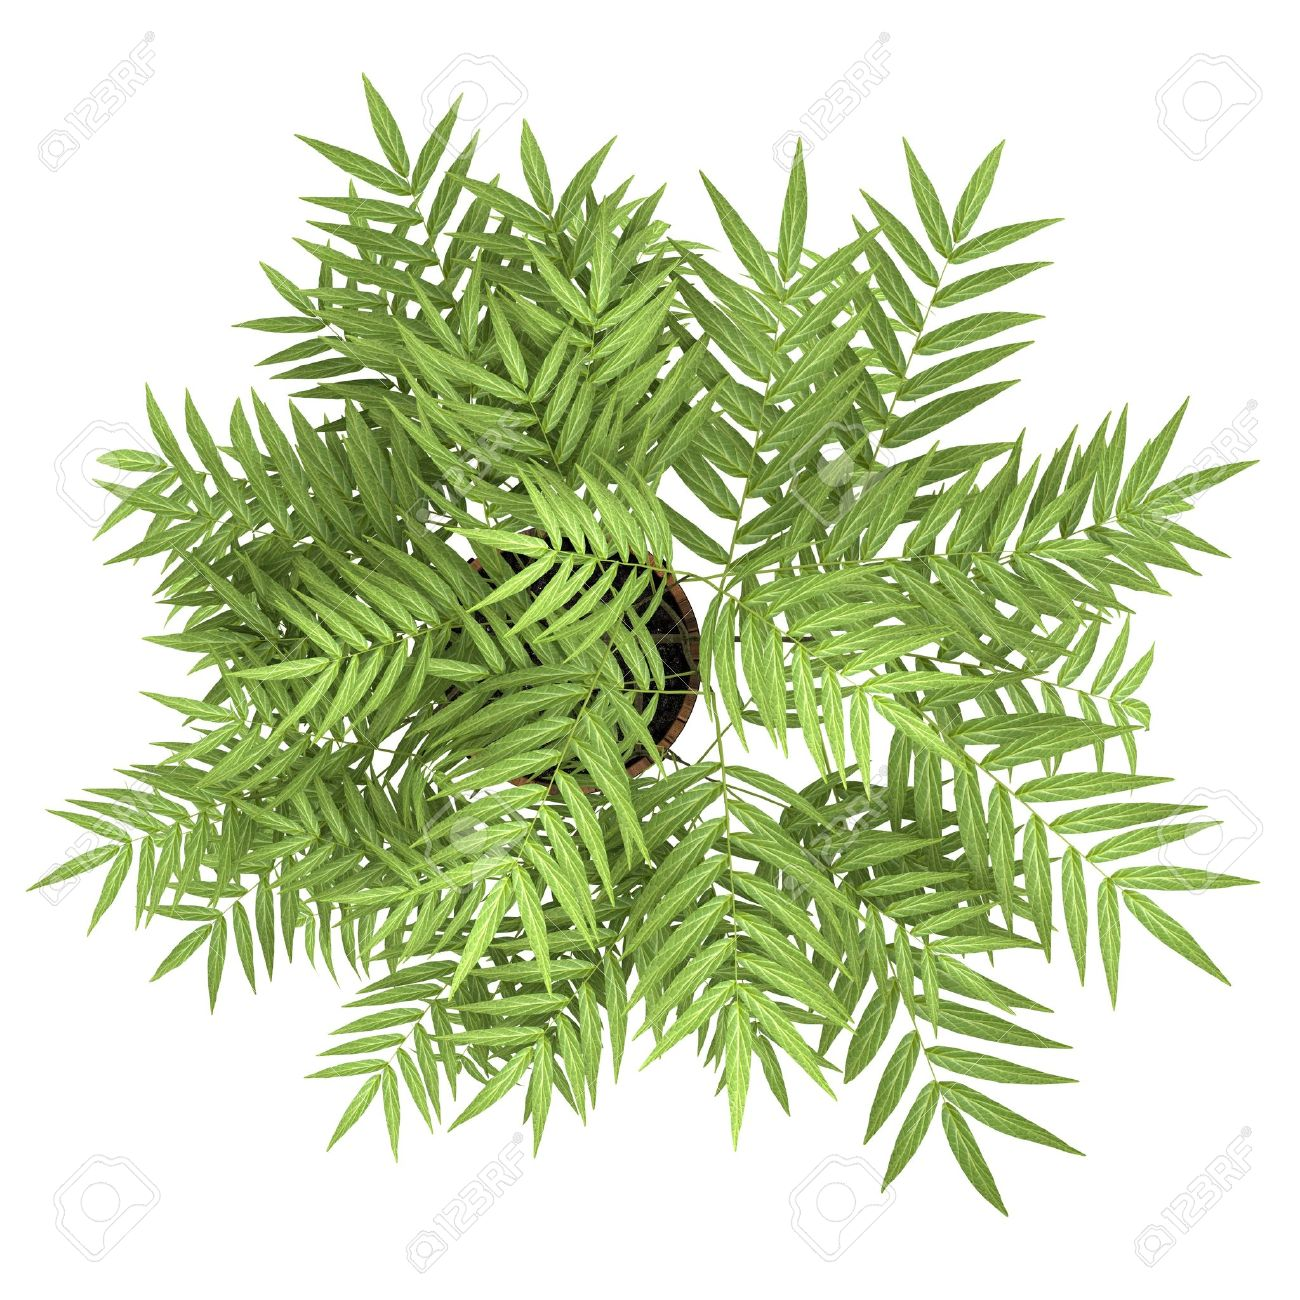 top view of decorative tree in pot isolated on white background Stock Photo - 19319277